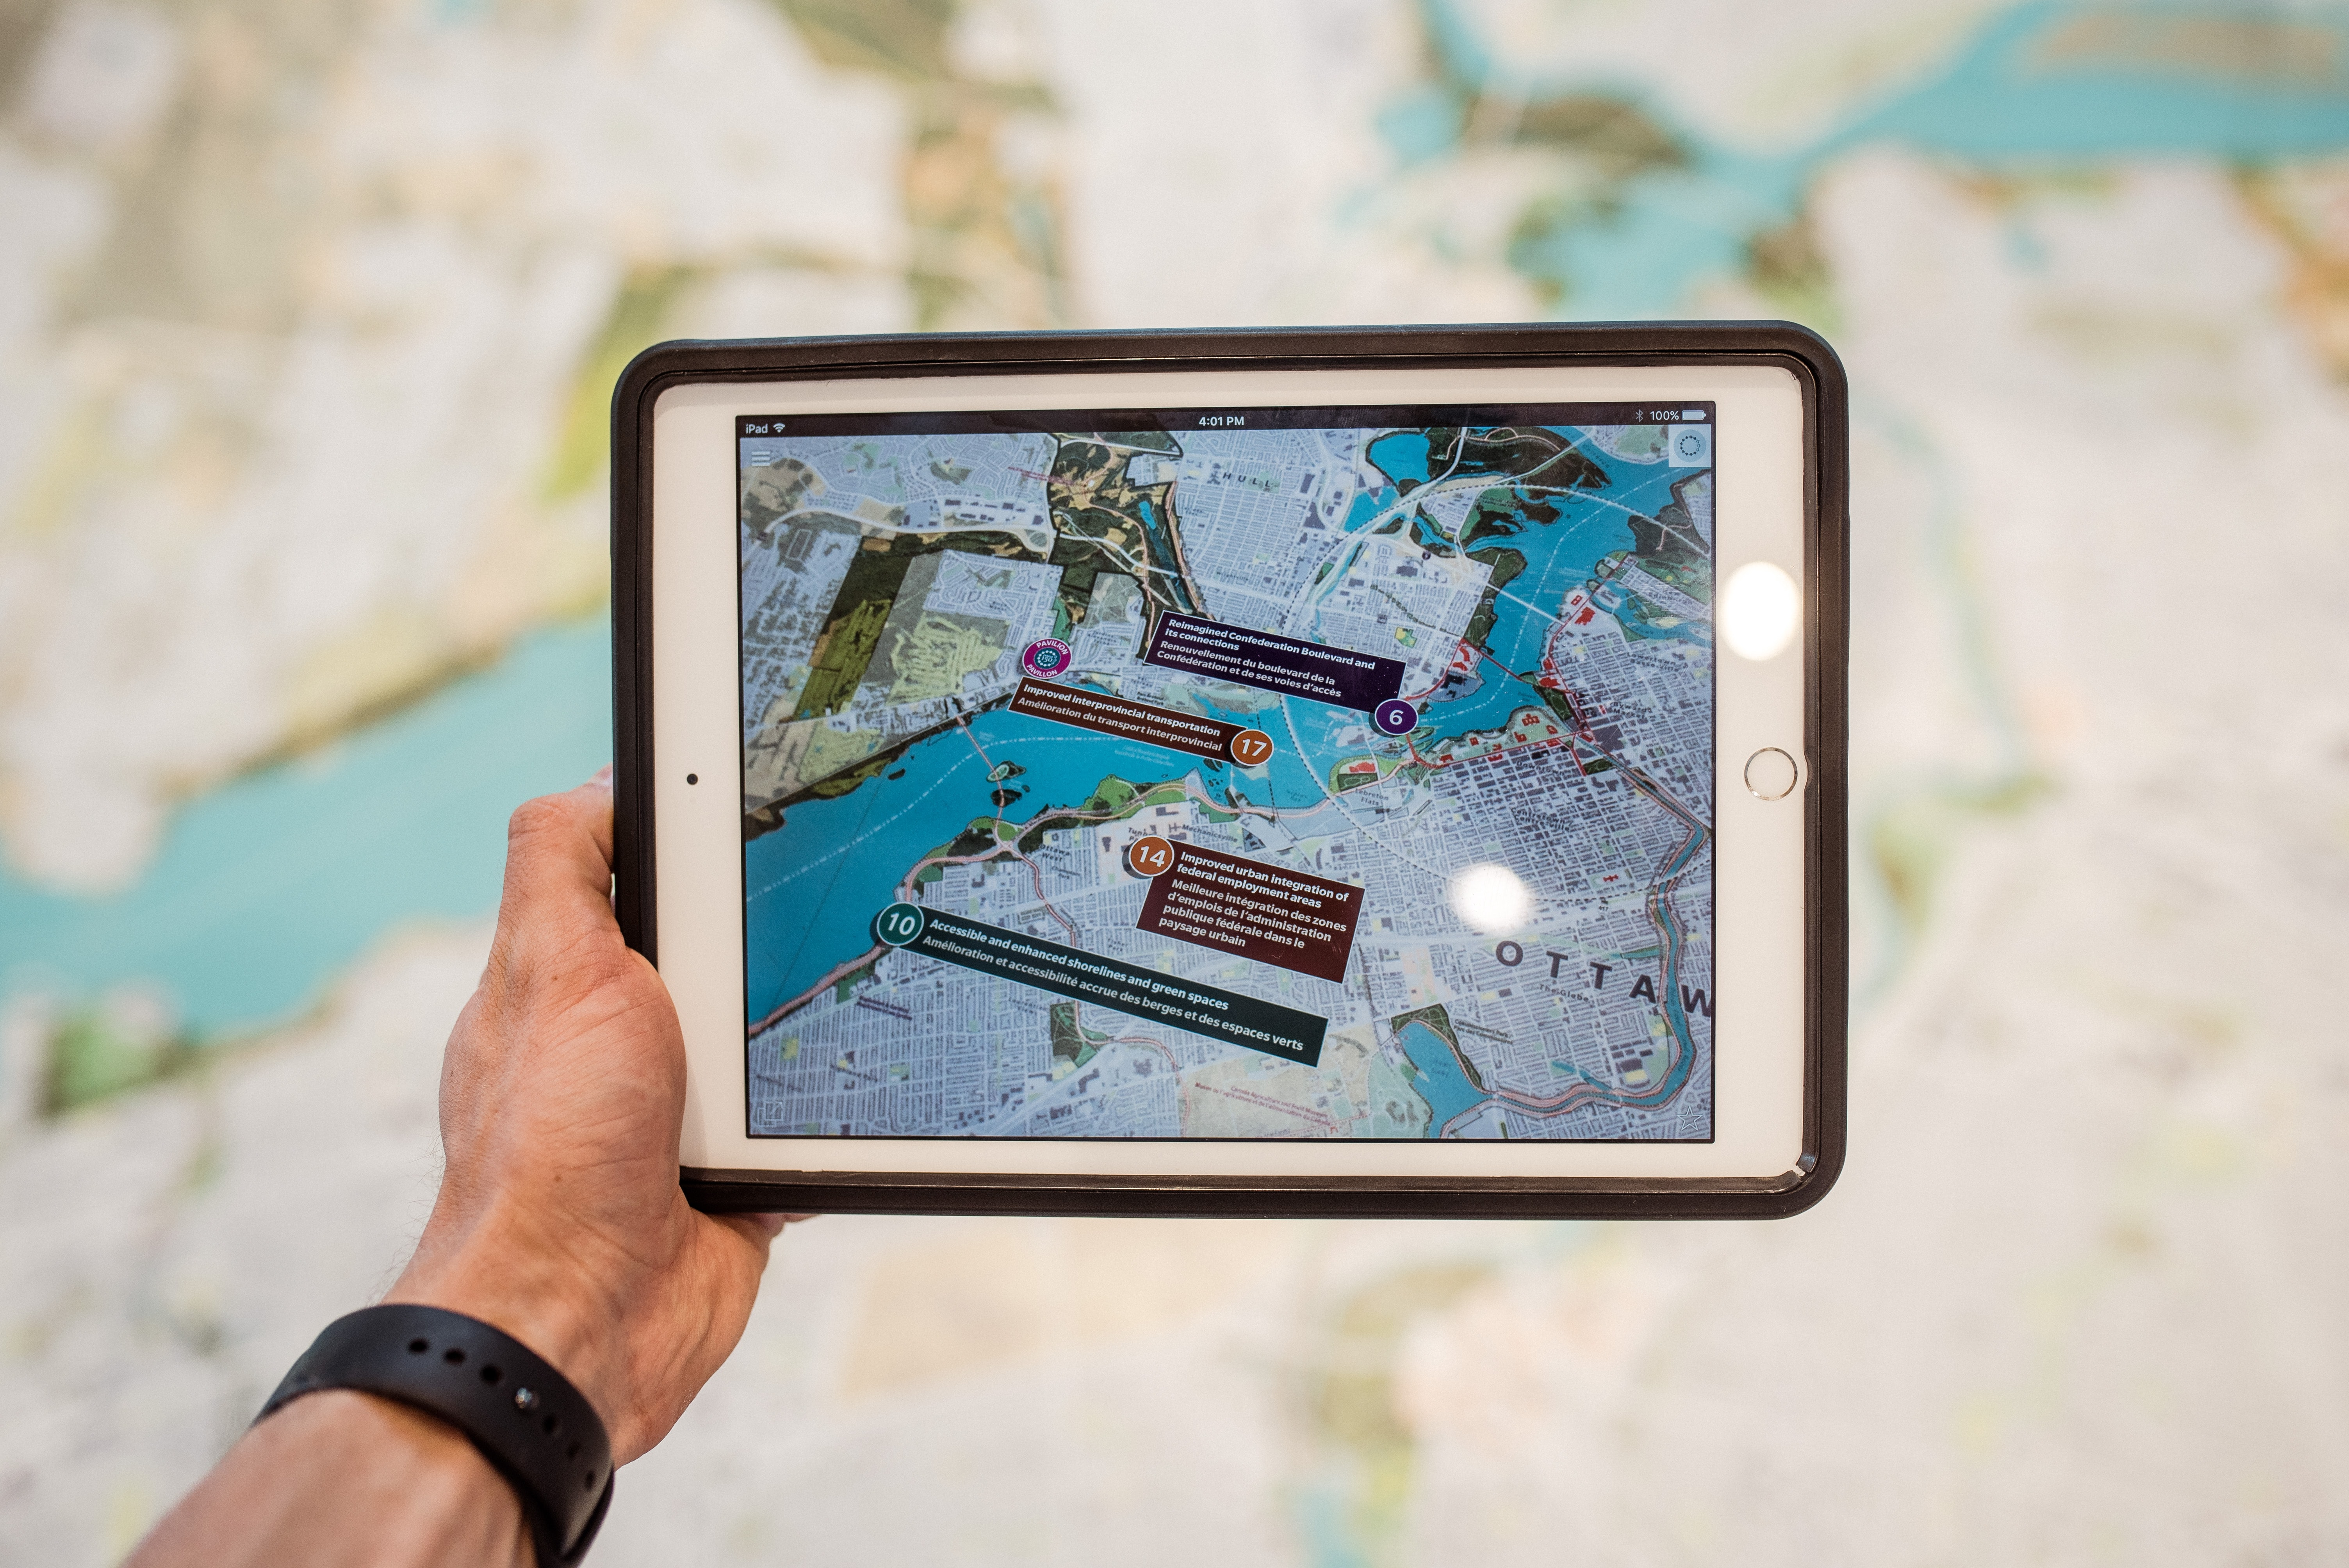 AR tools used in Maps